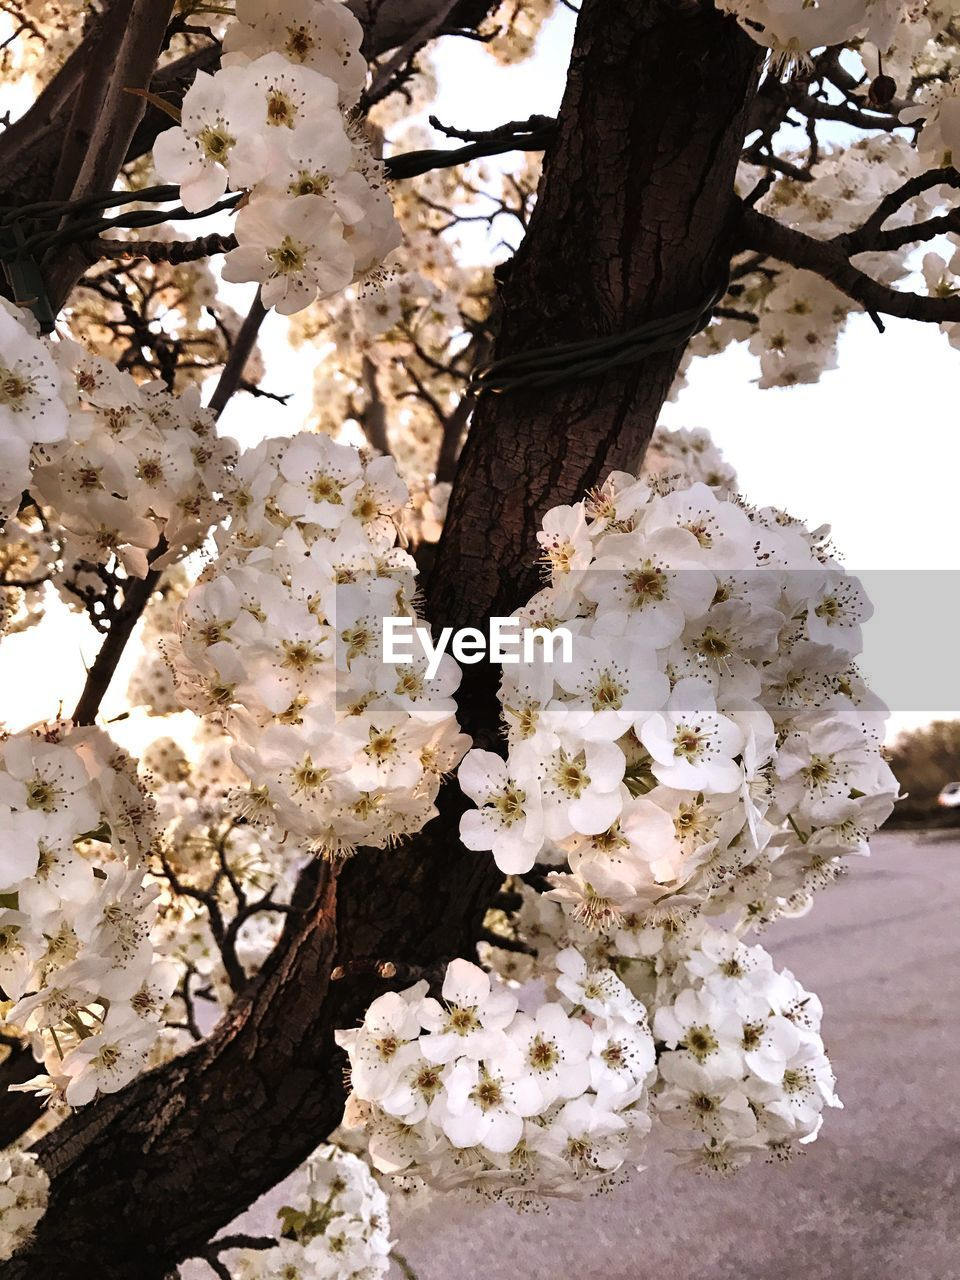 plant, flowering plant, flower, growth, beauty in nature, blossom, tree, fragility, vulnerability, freshness, white color, branch, springtime, nature, no people, close-up, cherry blossom, day, twig, botany, outdoors, cherry tree, flower head, spring, bunch of flowers